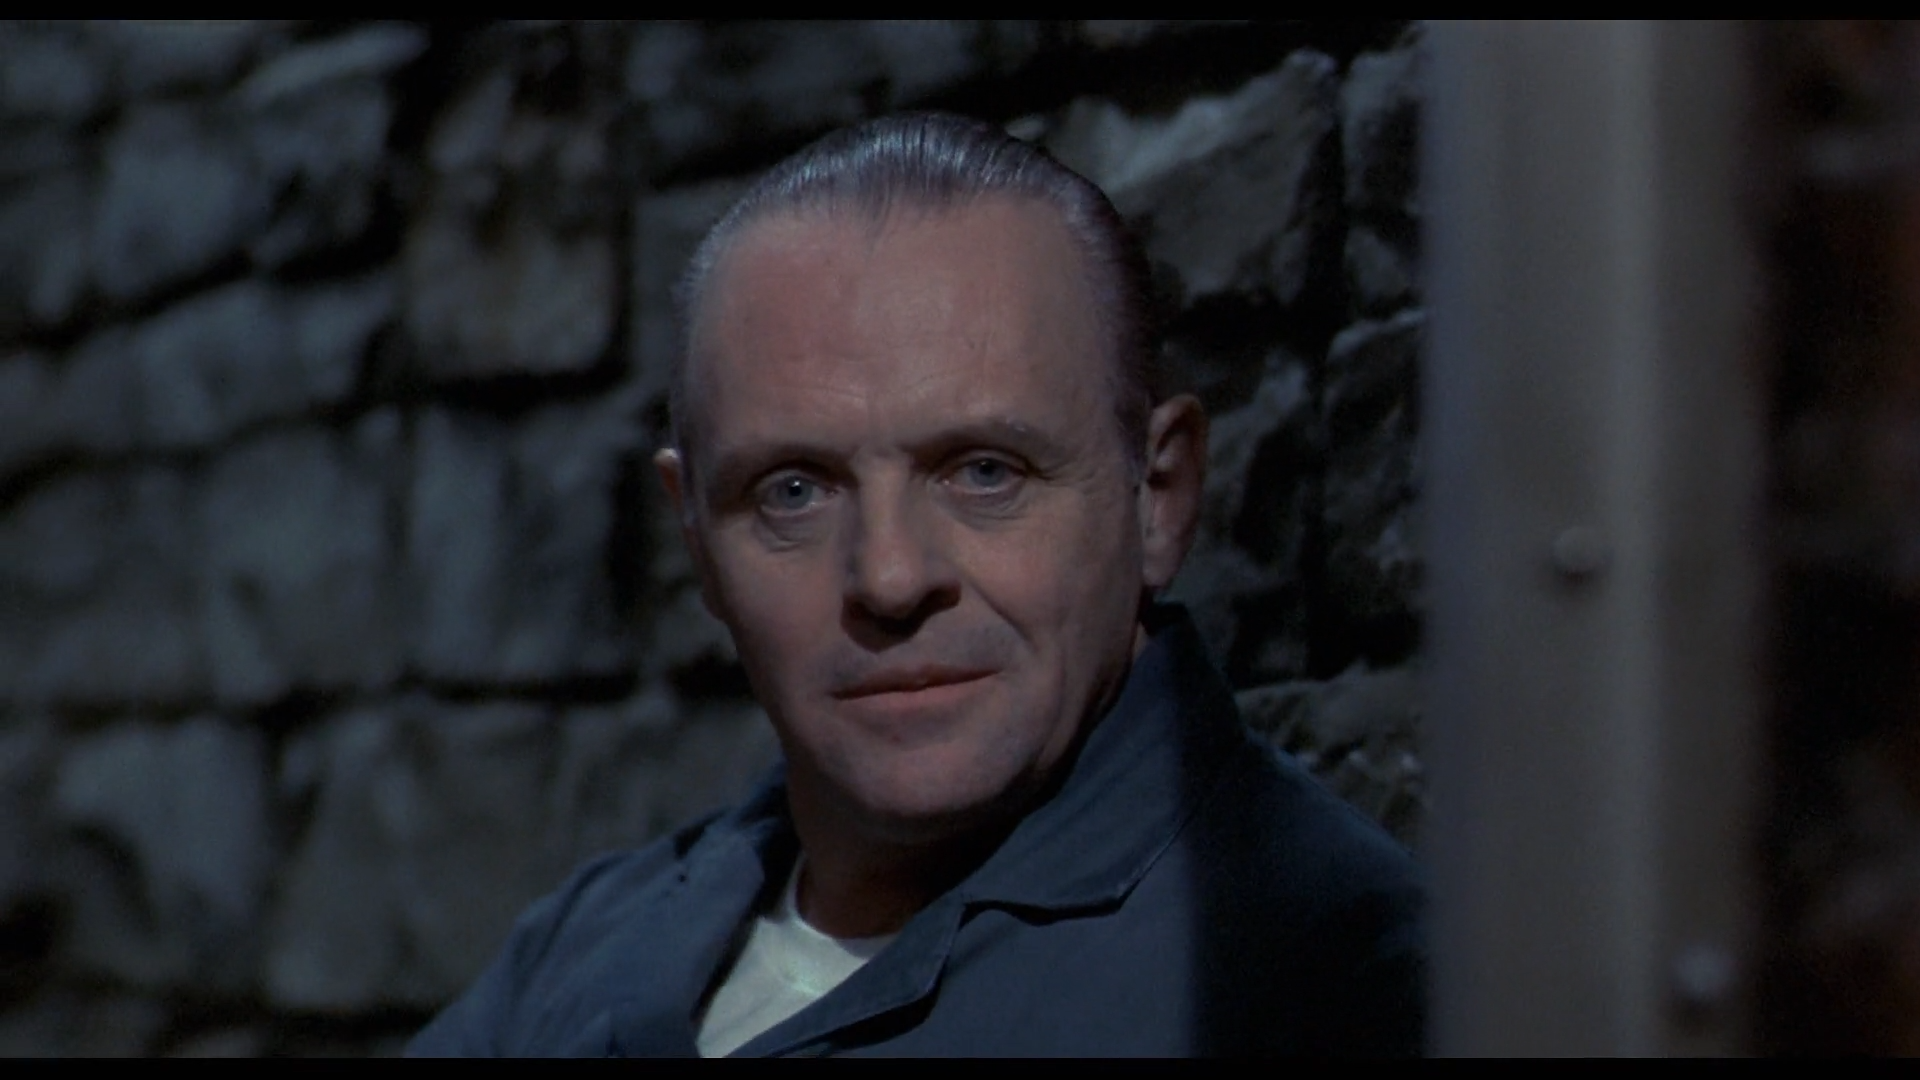 Hannibal Lecter / Gall... Anthony Hopkins